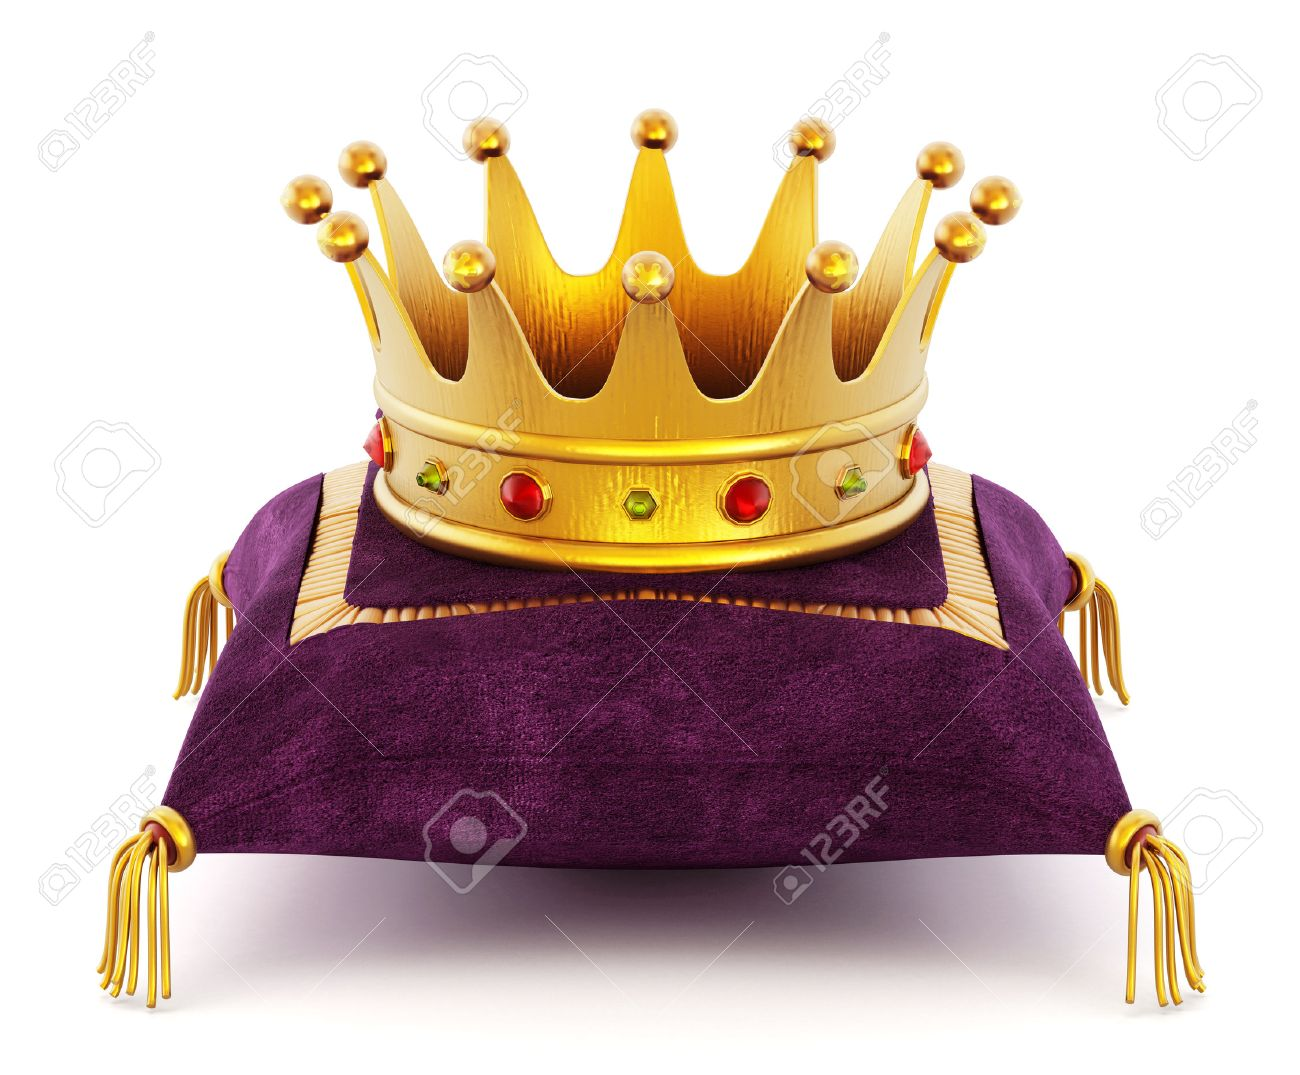 Gold Crown on the purple pillow isolated on white background Stock Photo - 42541165